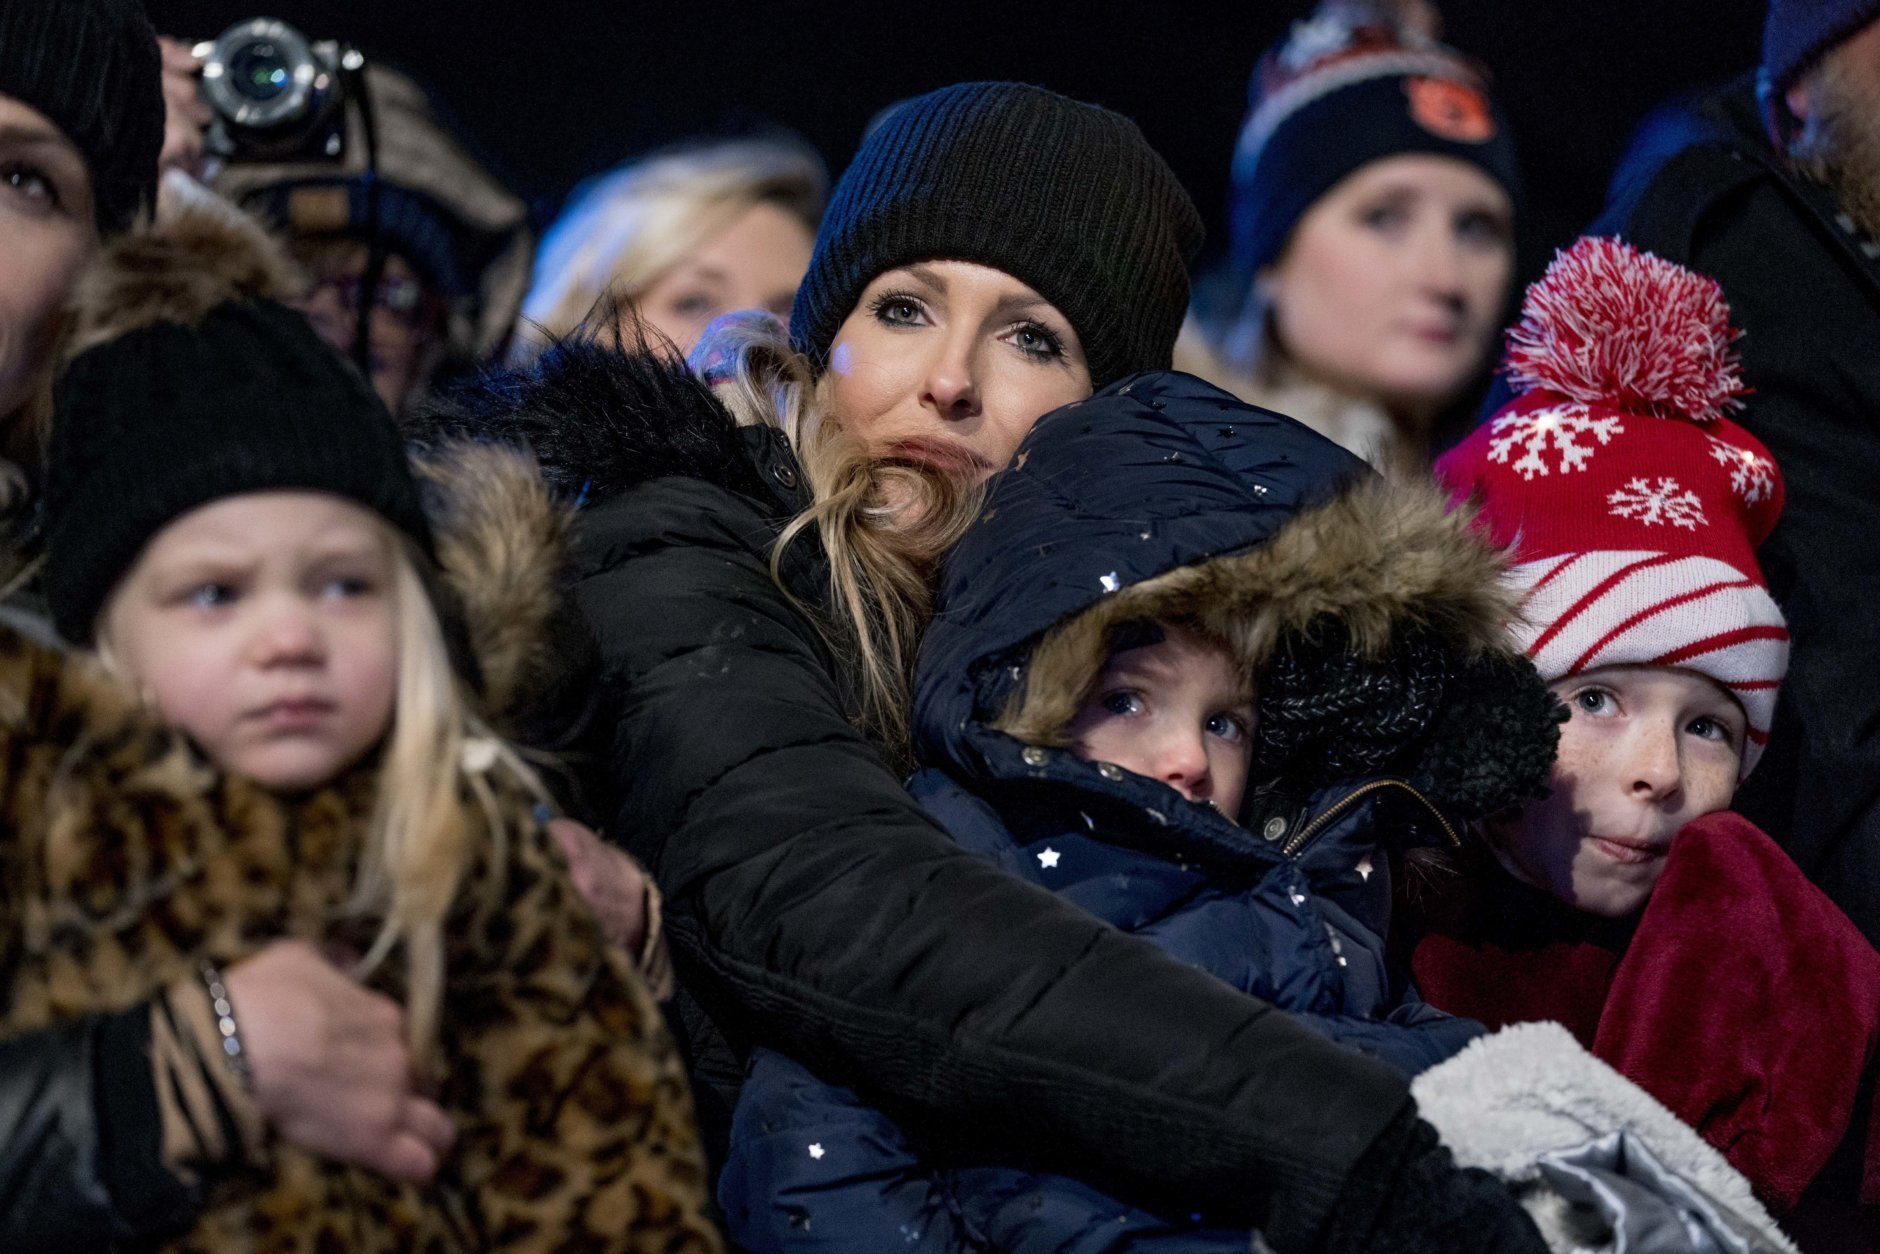 A woman and children in the front row huddle together to stay warm during the National Christmas Tree lighting ceremony at the Ellipse near the White House in Washington, Wednesday, Nov. 28, 2018. (AP Photo/Andrew Harnik)